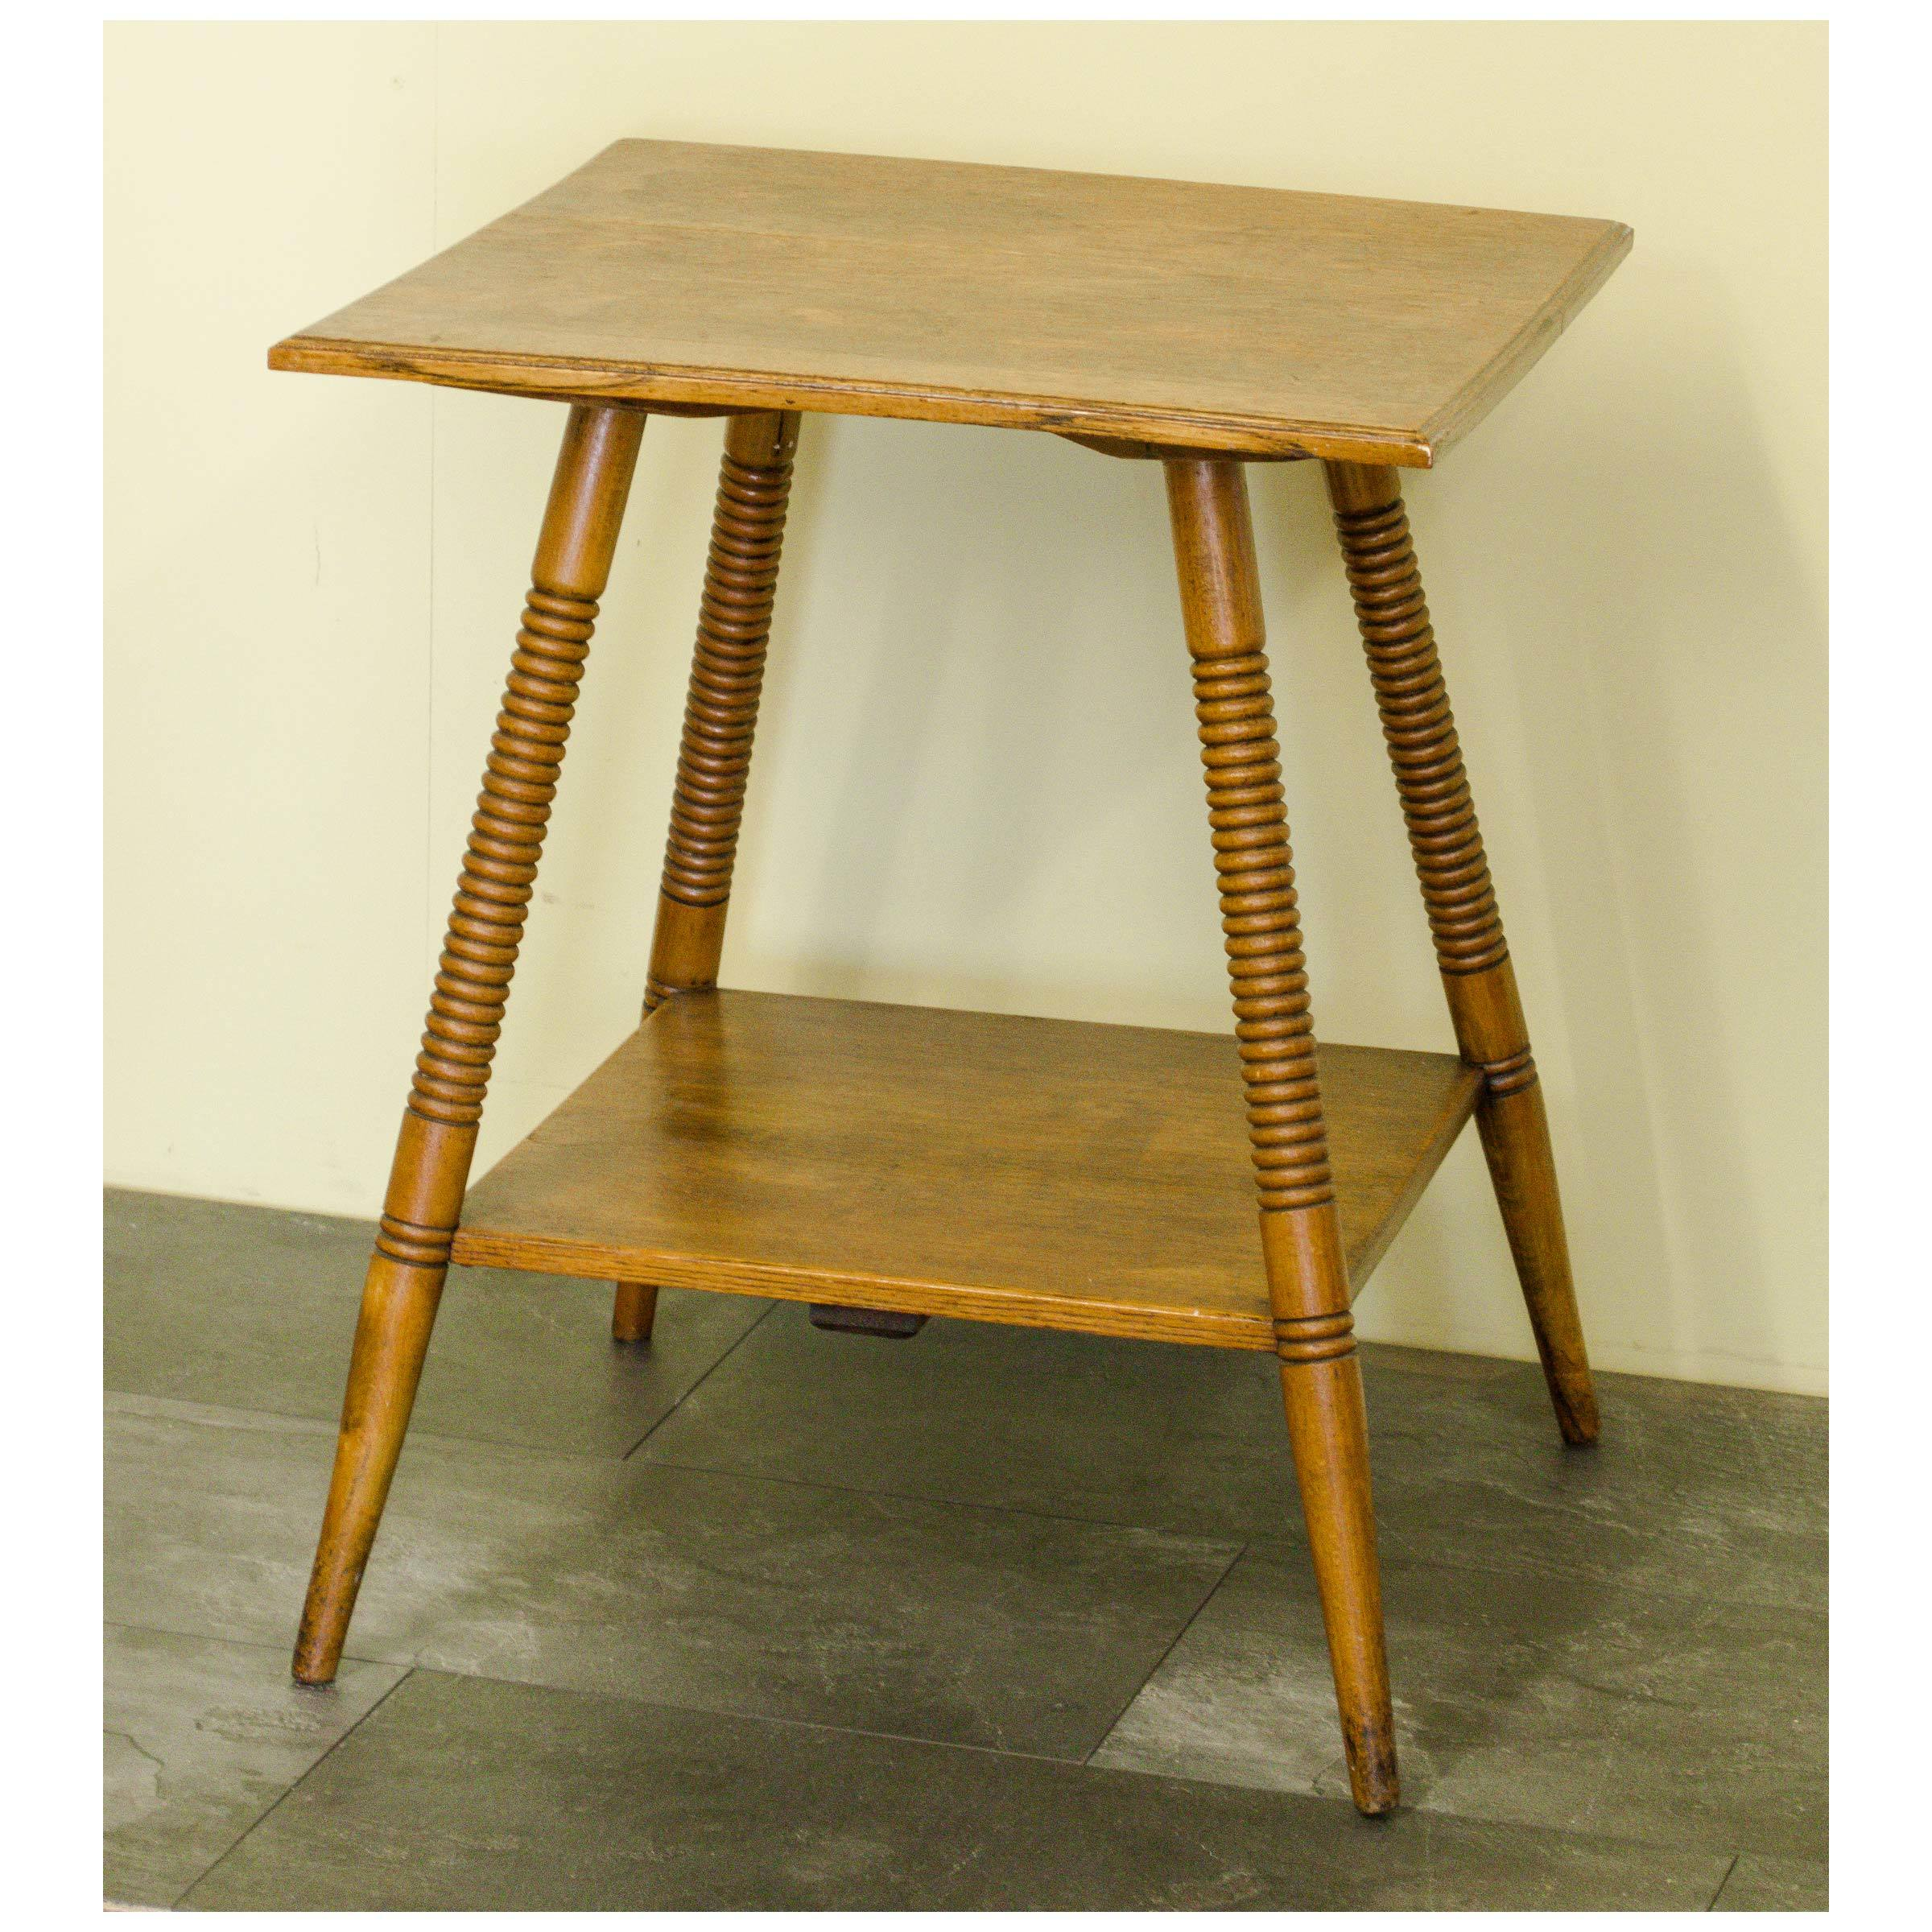 arts-and-crafts-square-two-tier-occasional-table-by-william-birch-b0020005a.jpg